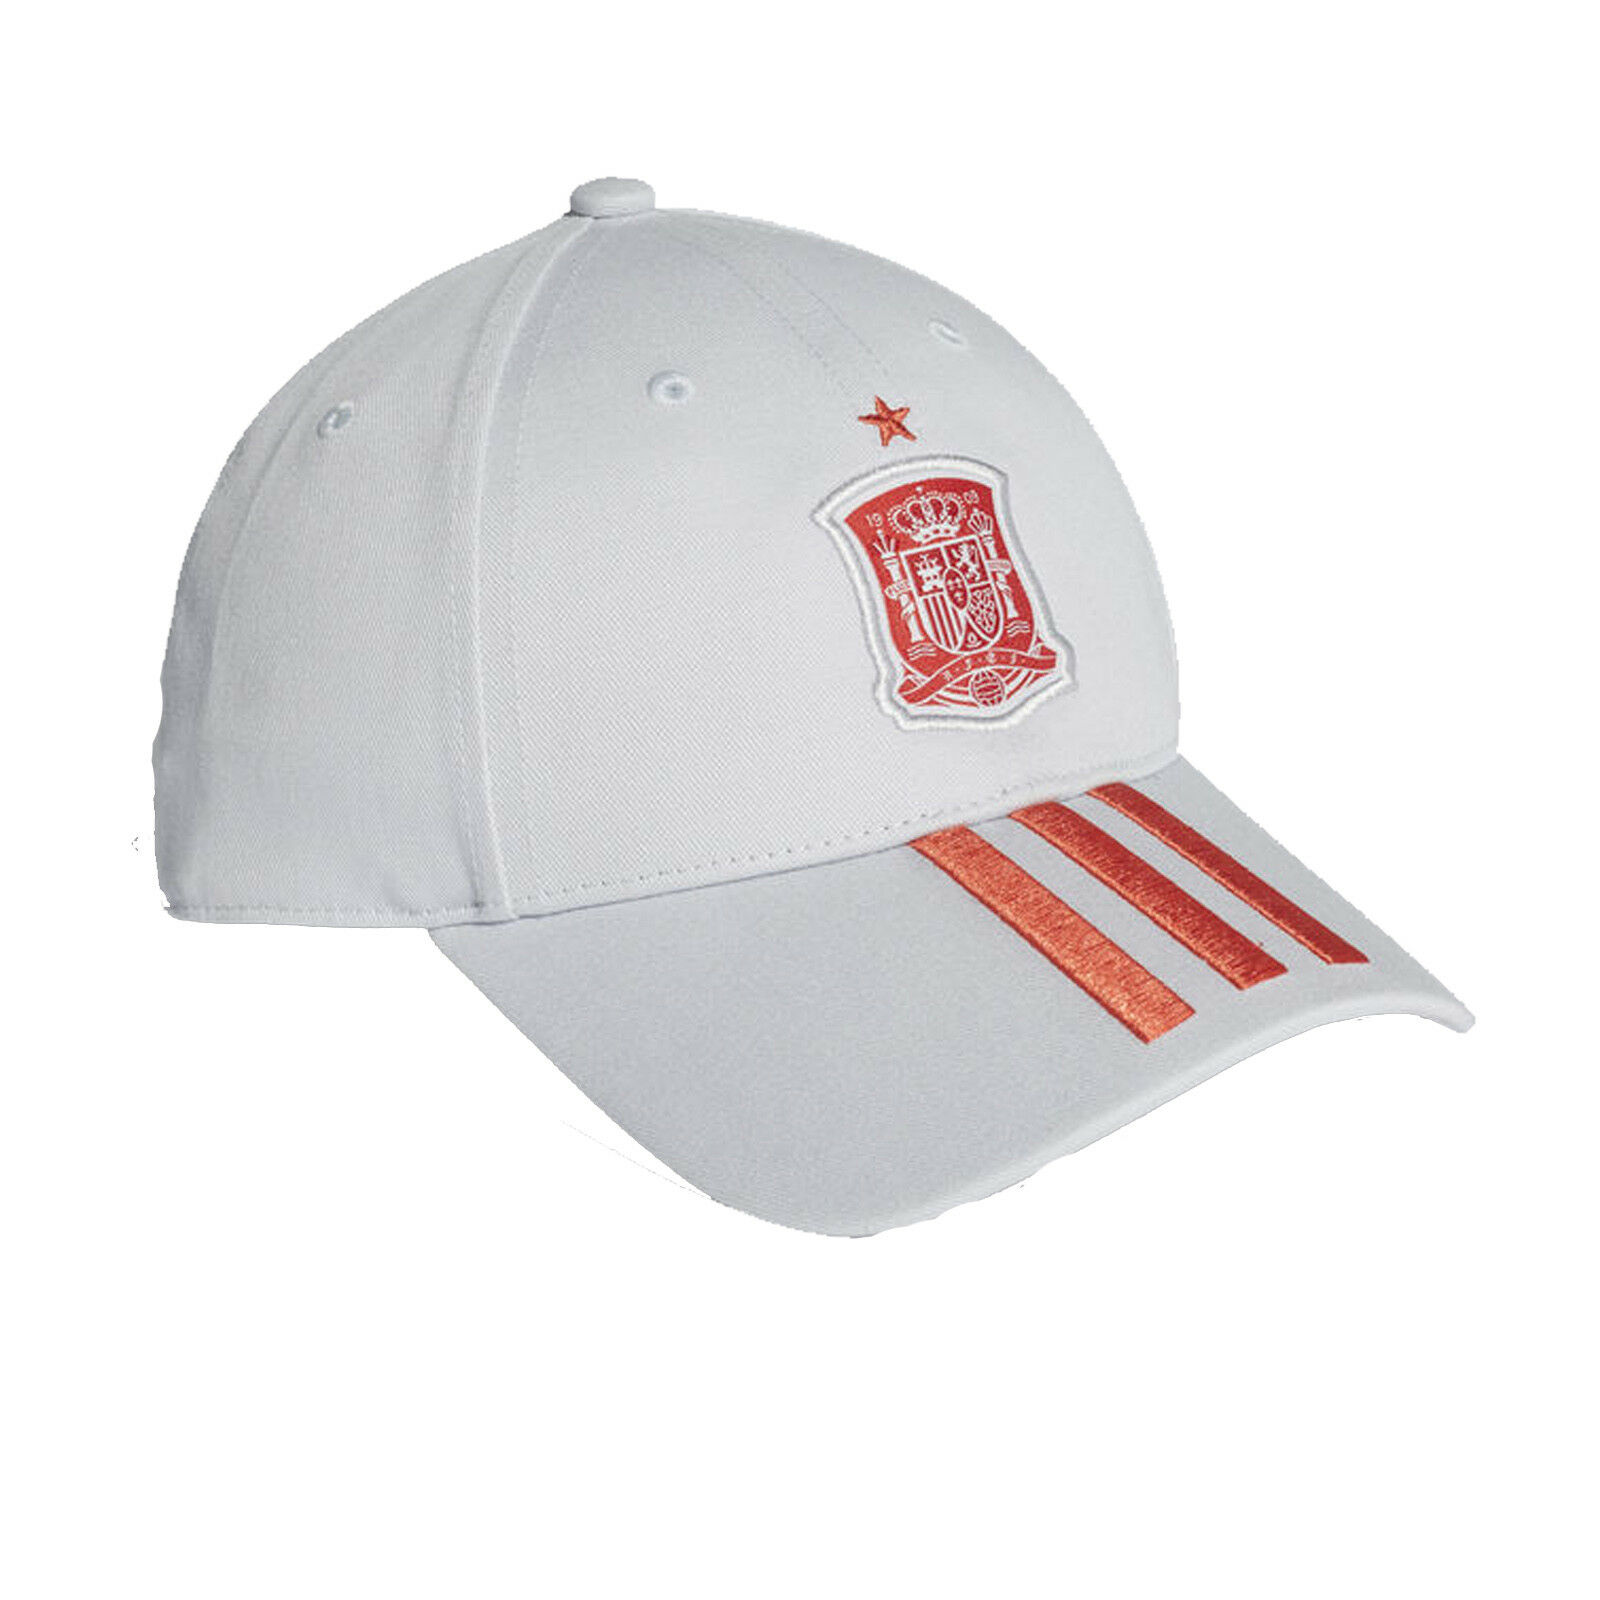 the latest ee27e b2b78 Adidas Spain Football Cap. Spain crest takes centre stage on front and  decorates the buckle on the adjustable back strap. 3-Stripes ...